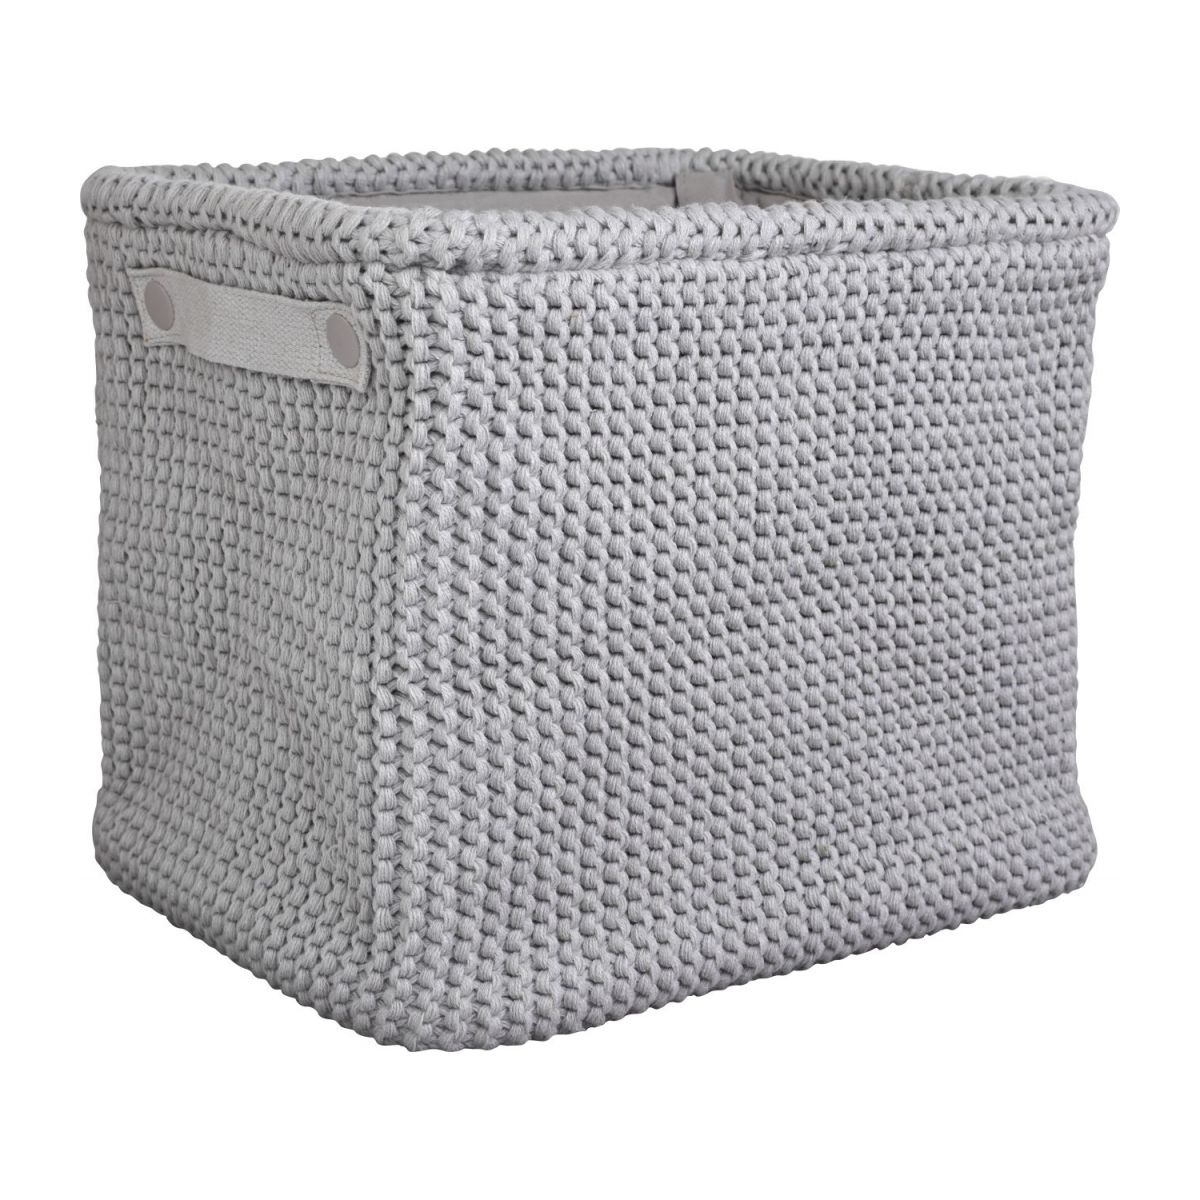 Large square basket n°1